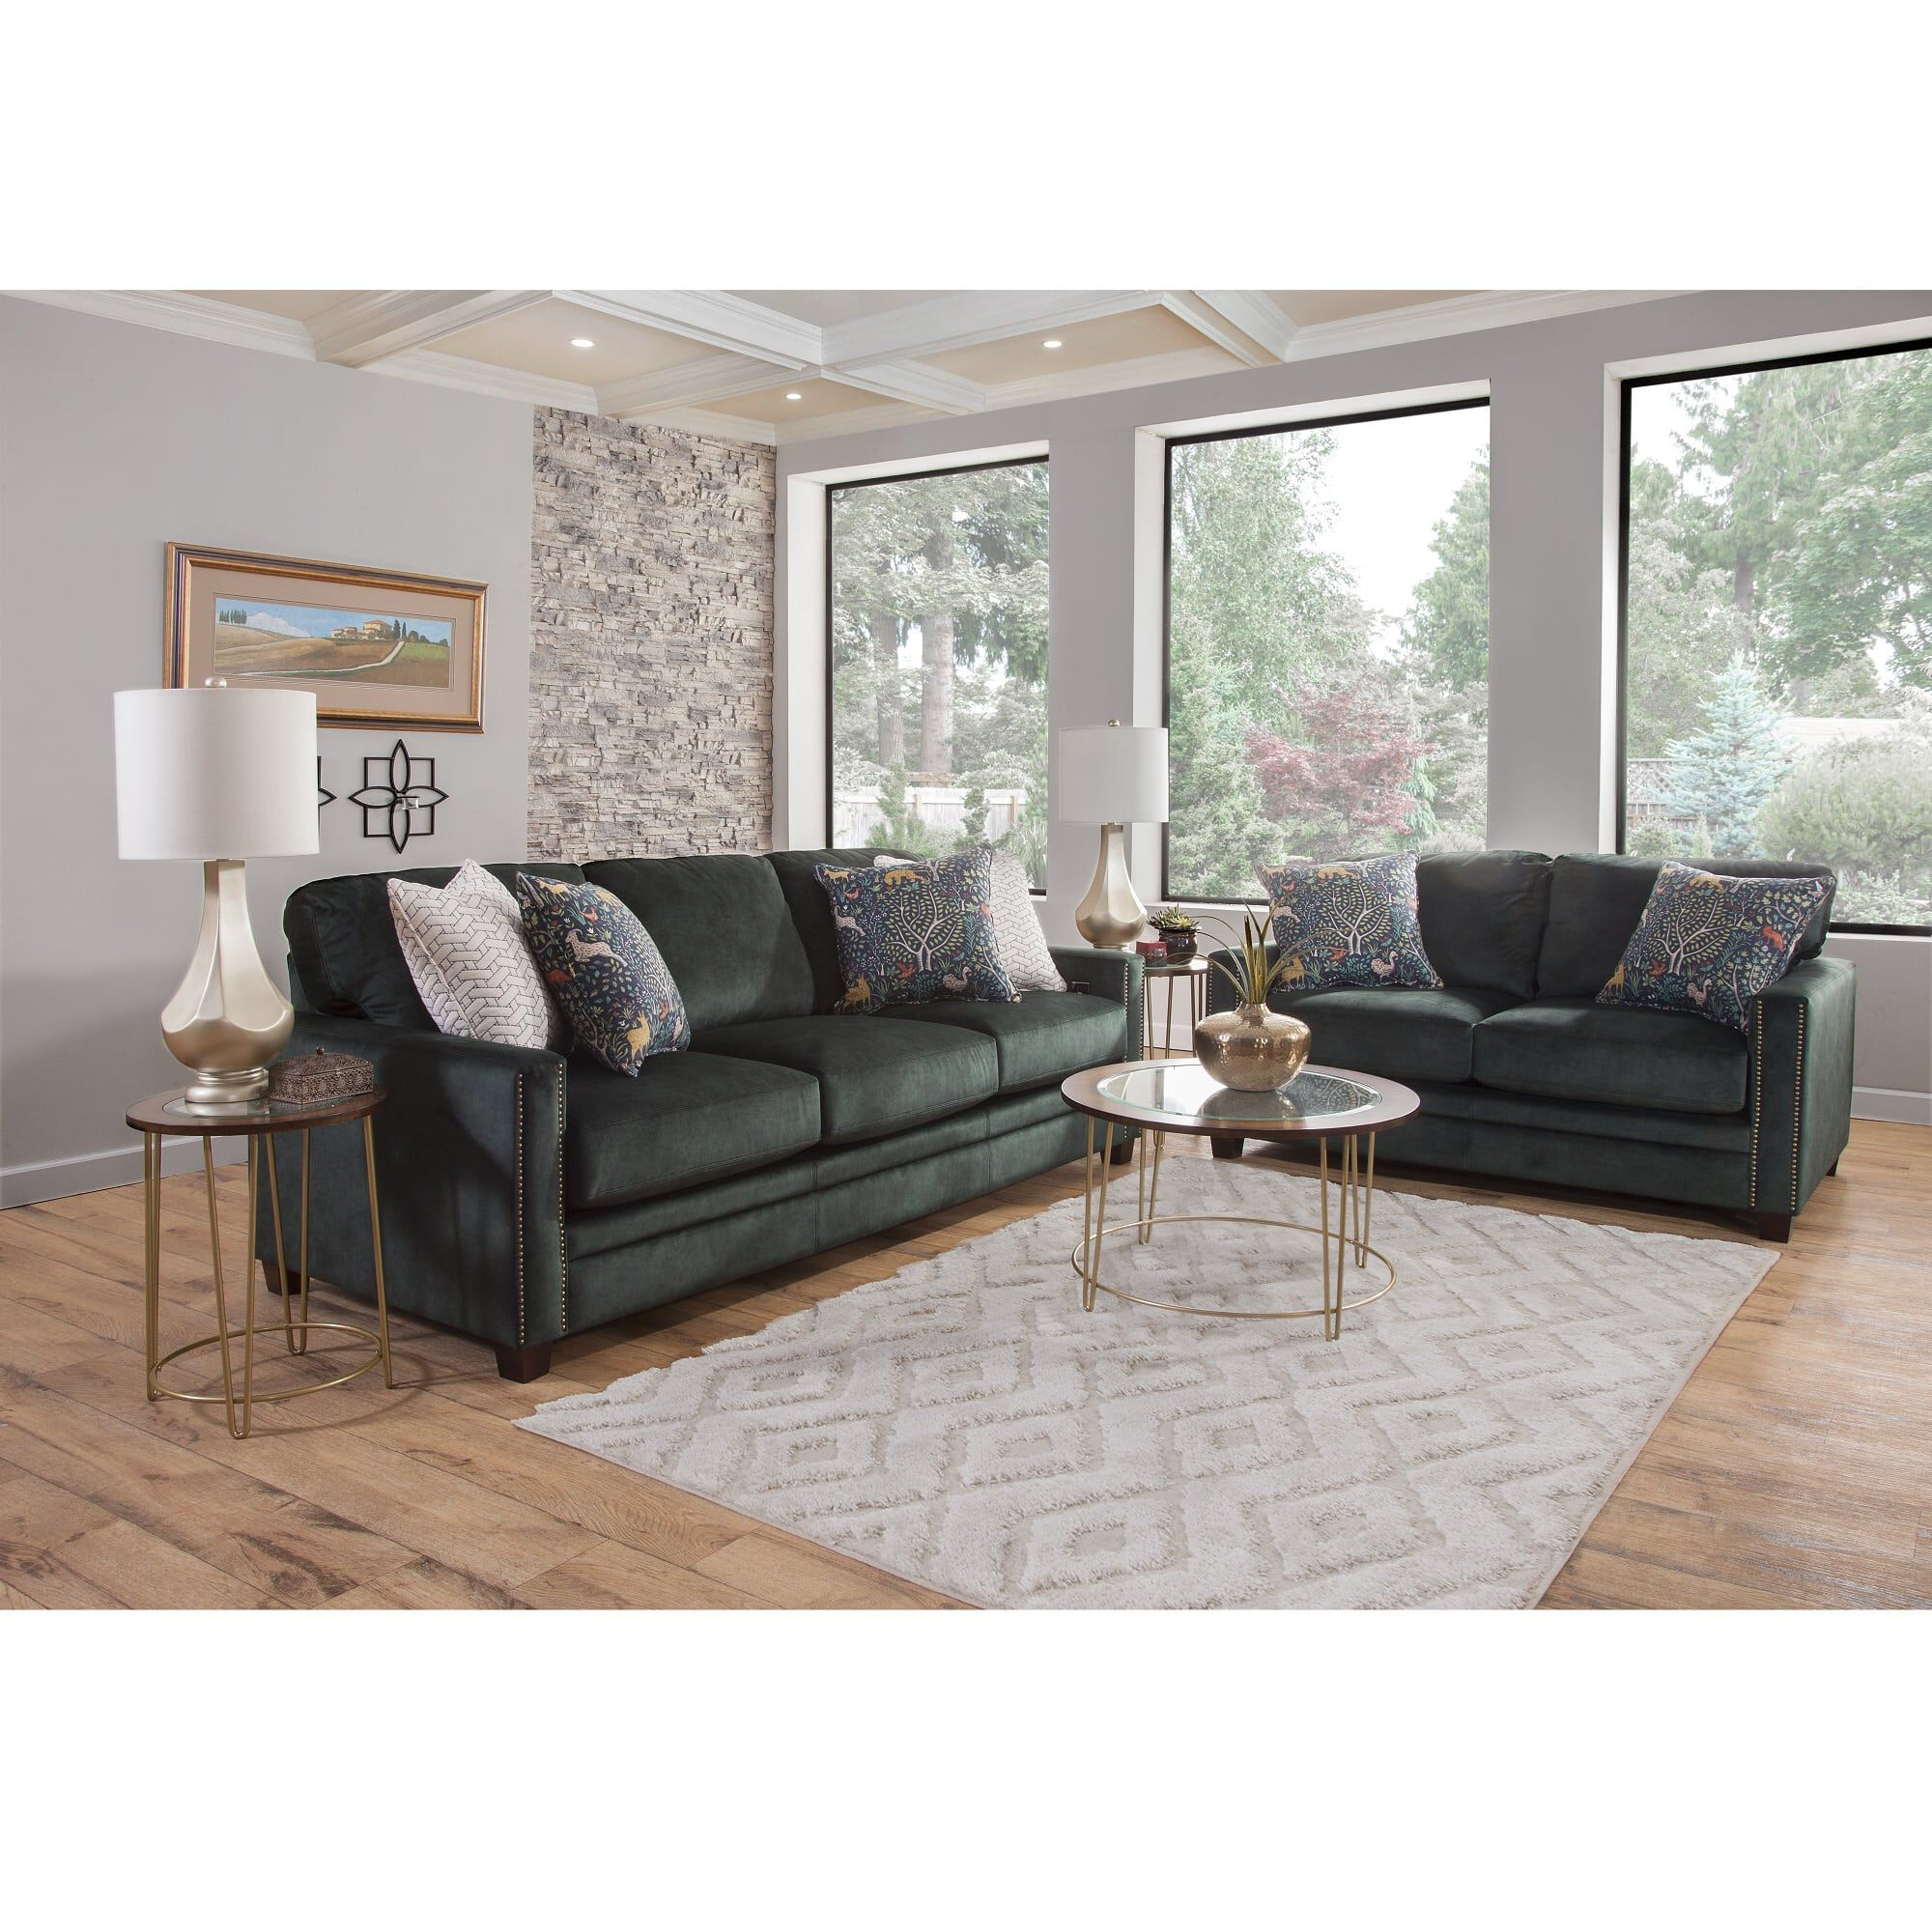 2 Piece Janelle Living Room Collection